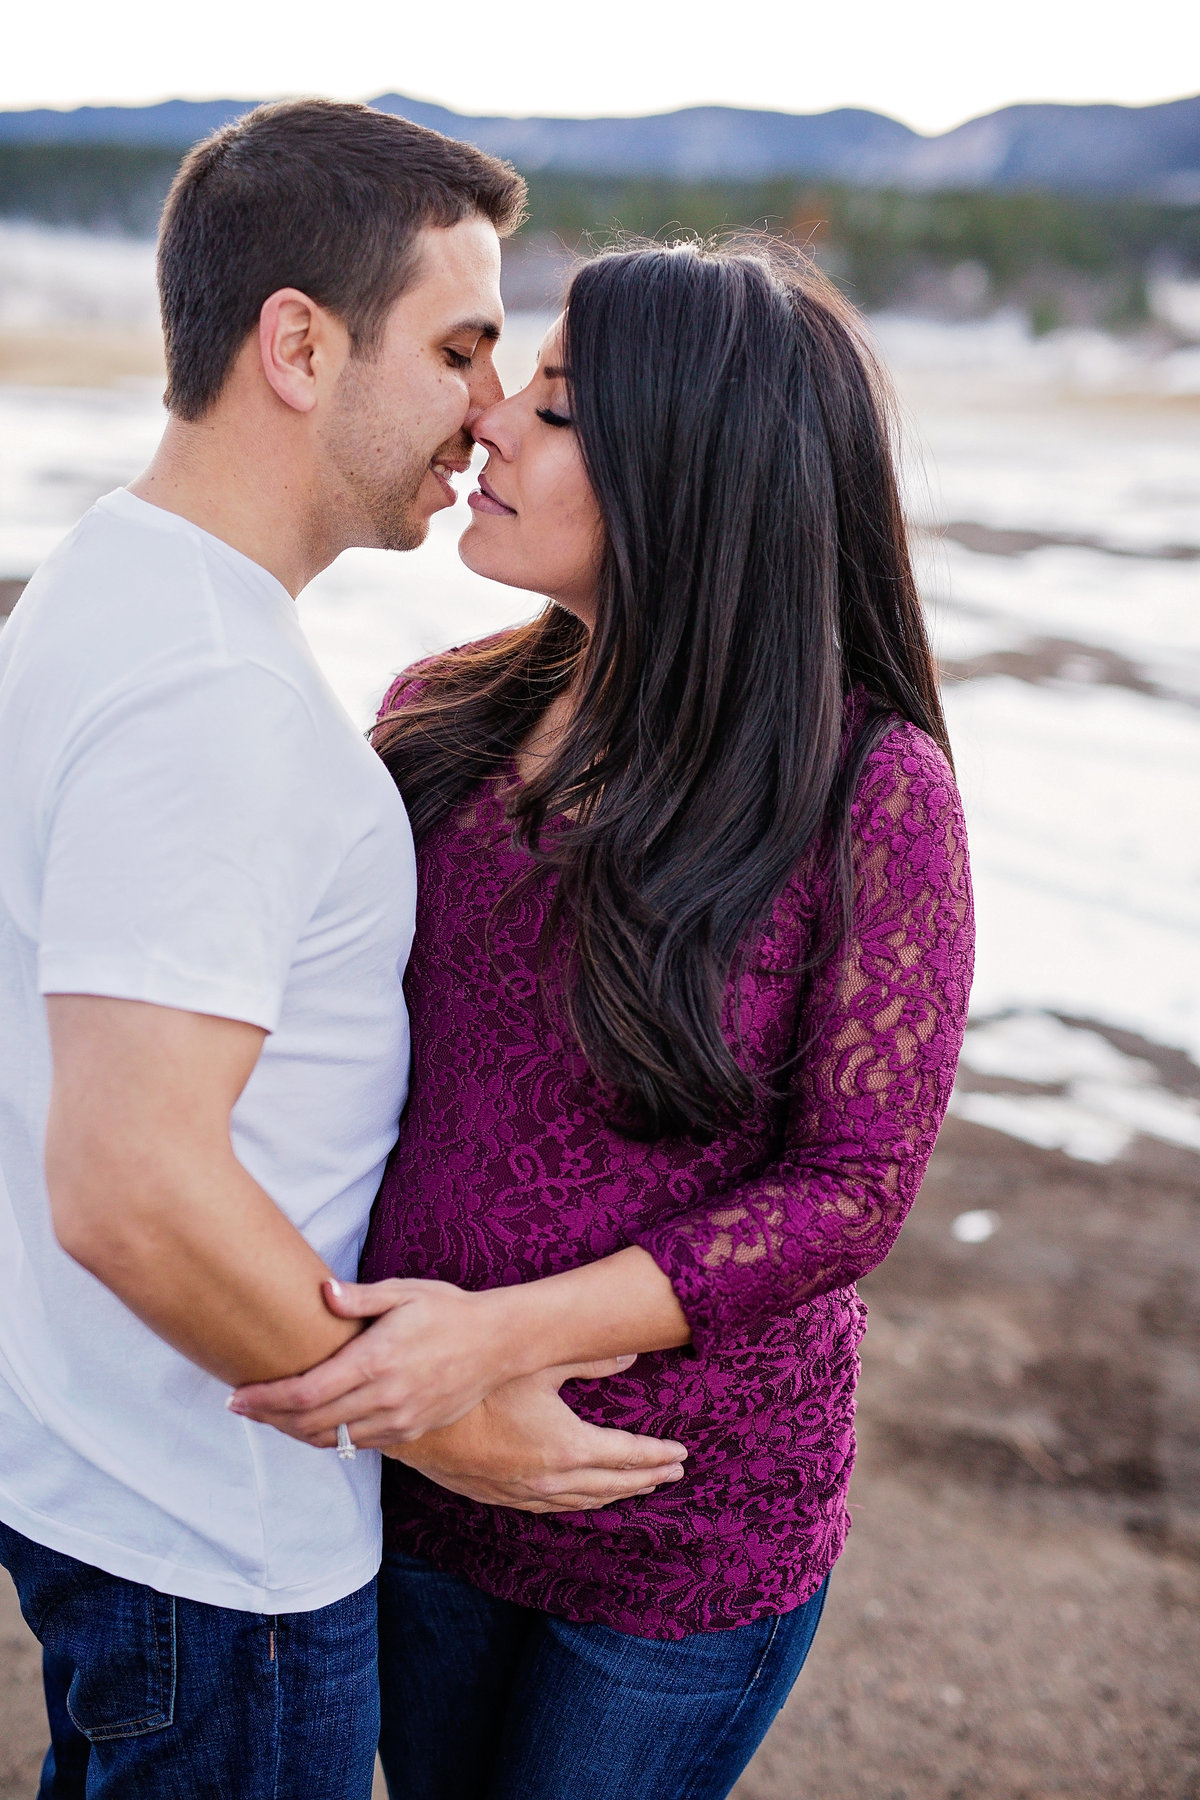 Maternity photos with siblings